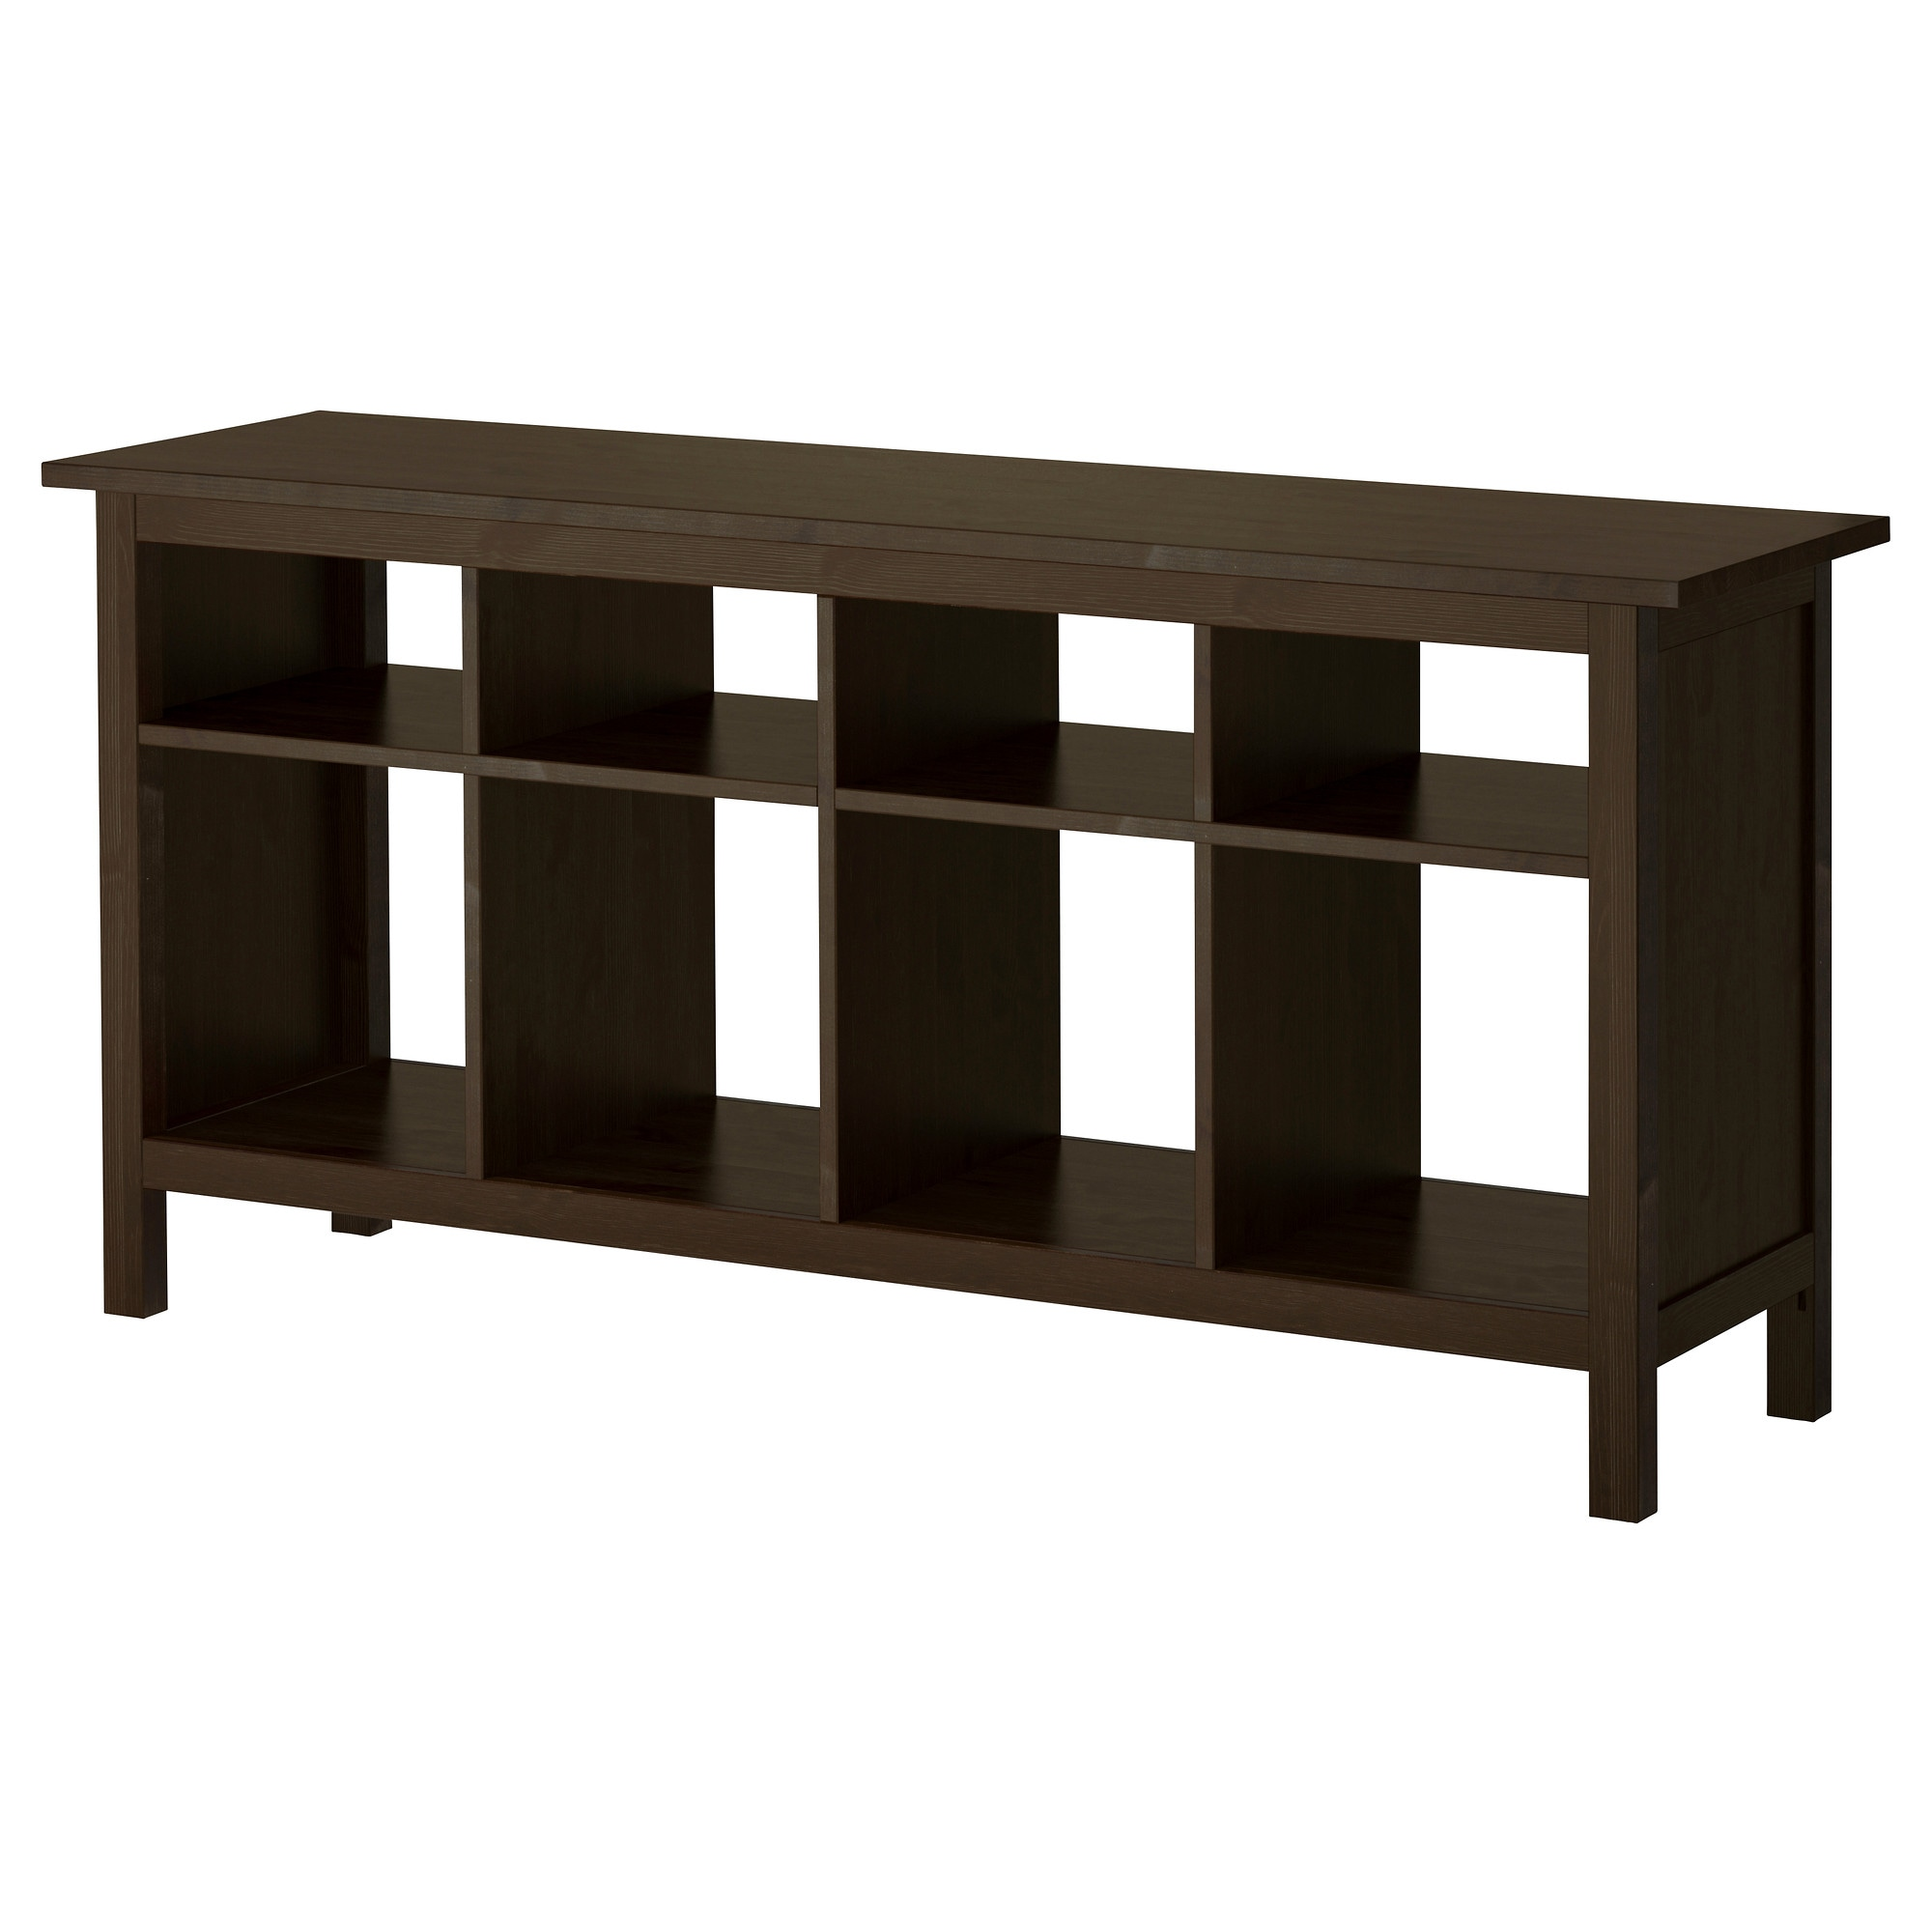 HEMNES living room series IKEA